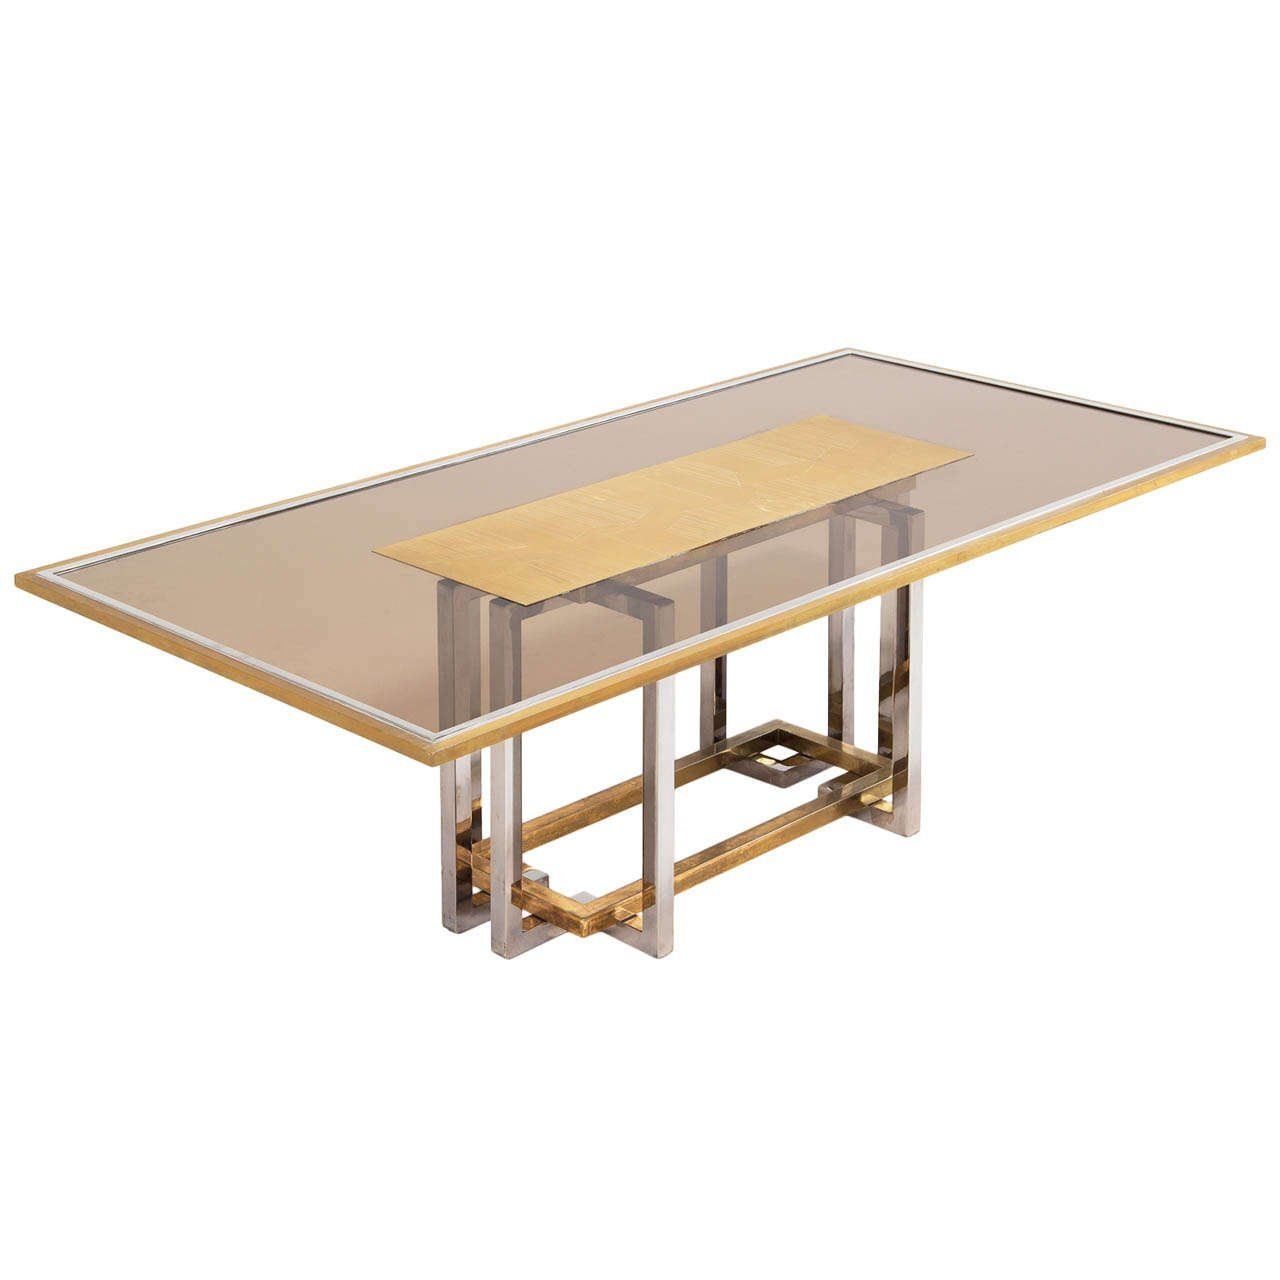 Italian Chrome And Brass Dining Table With Elegant Glass Top For